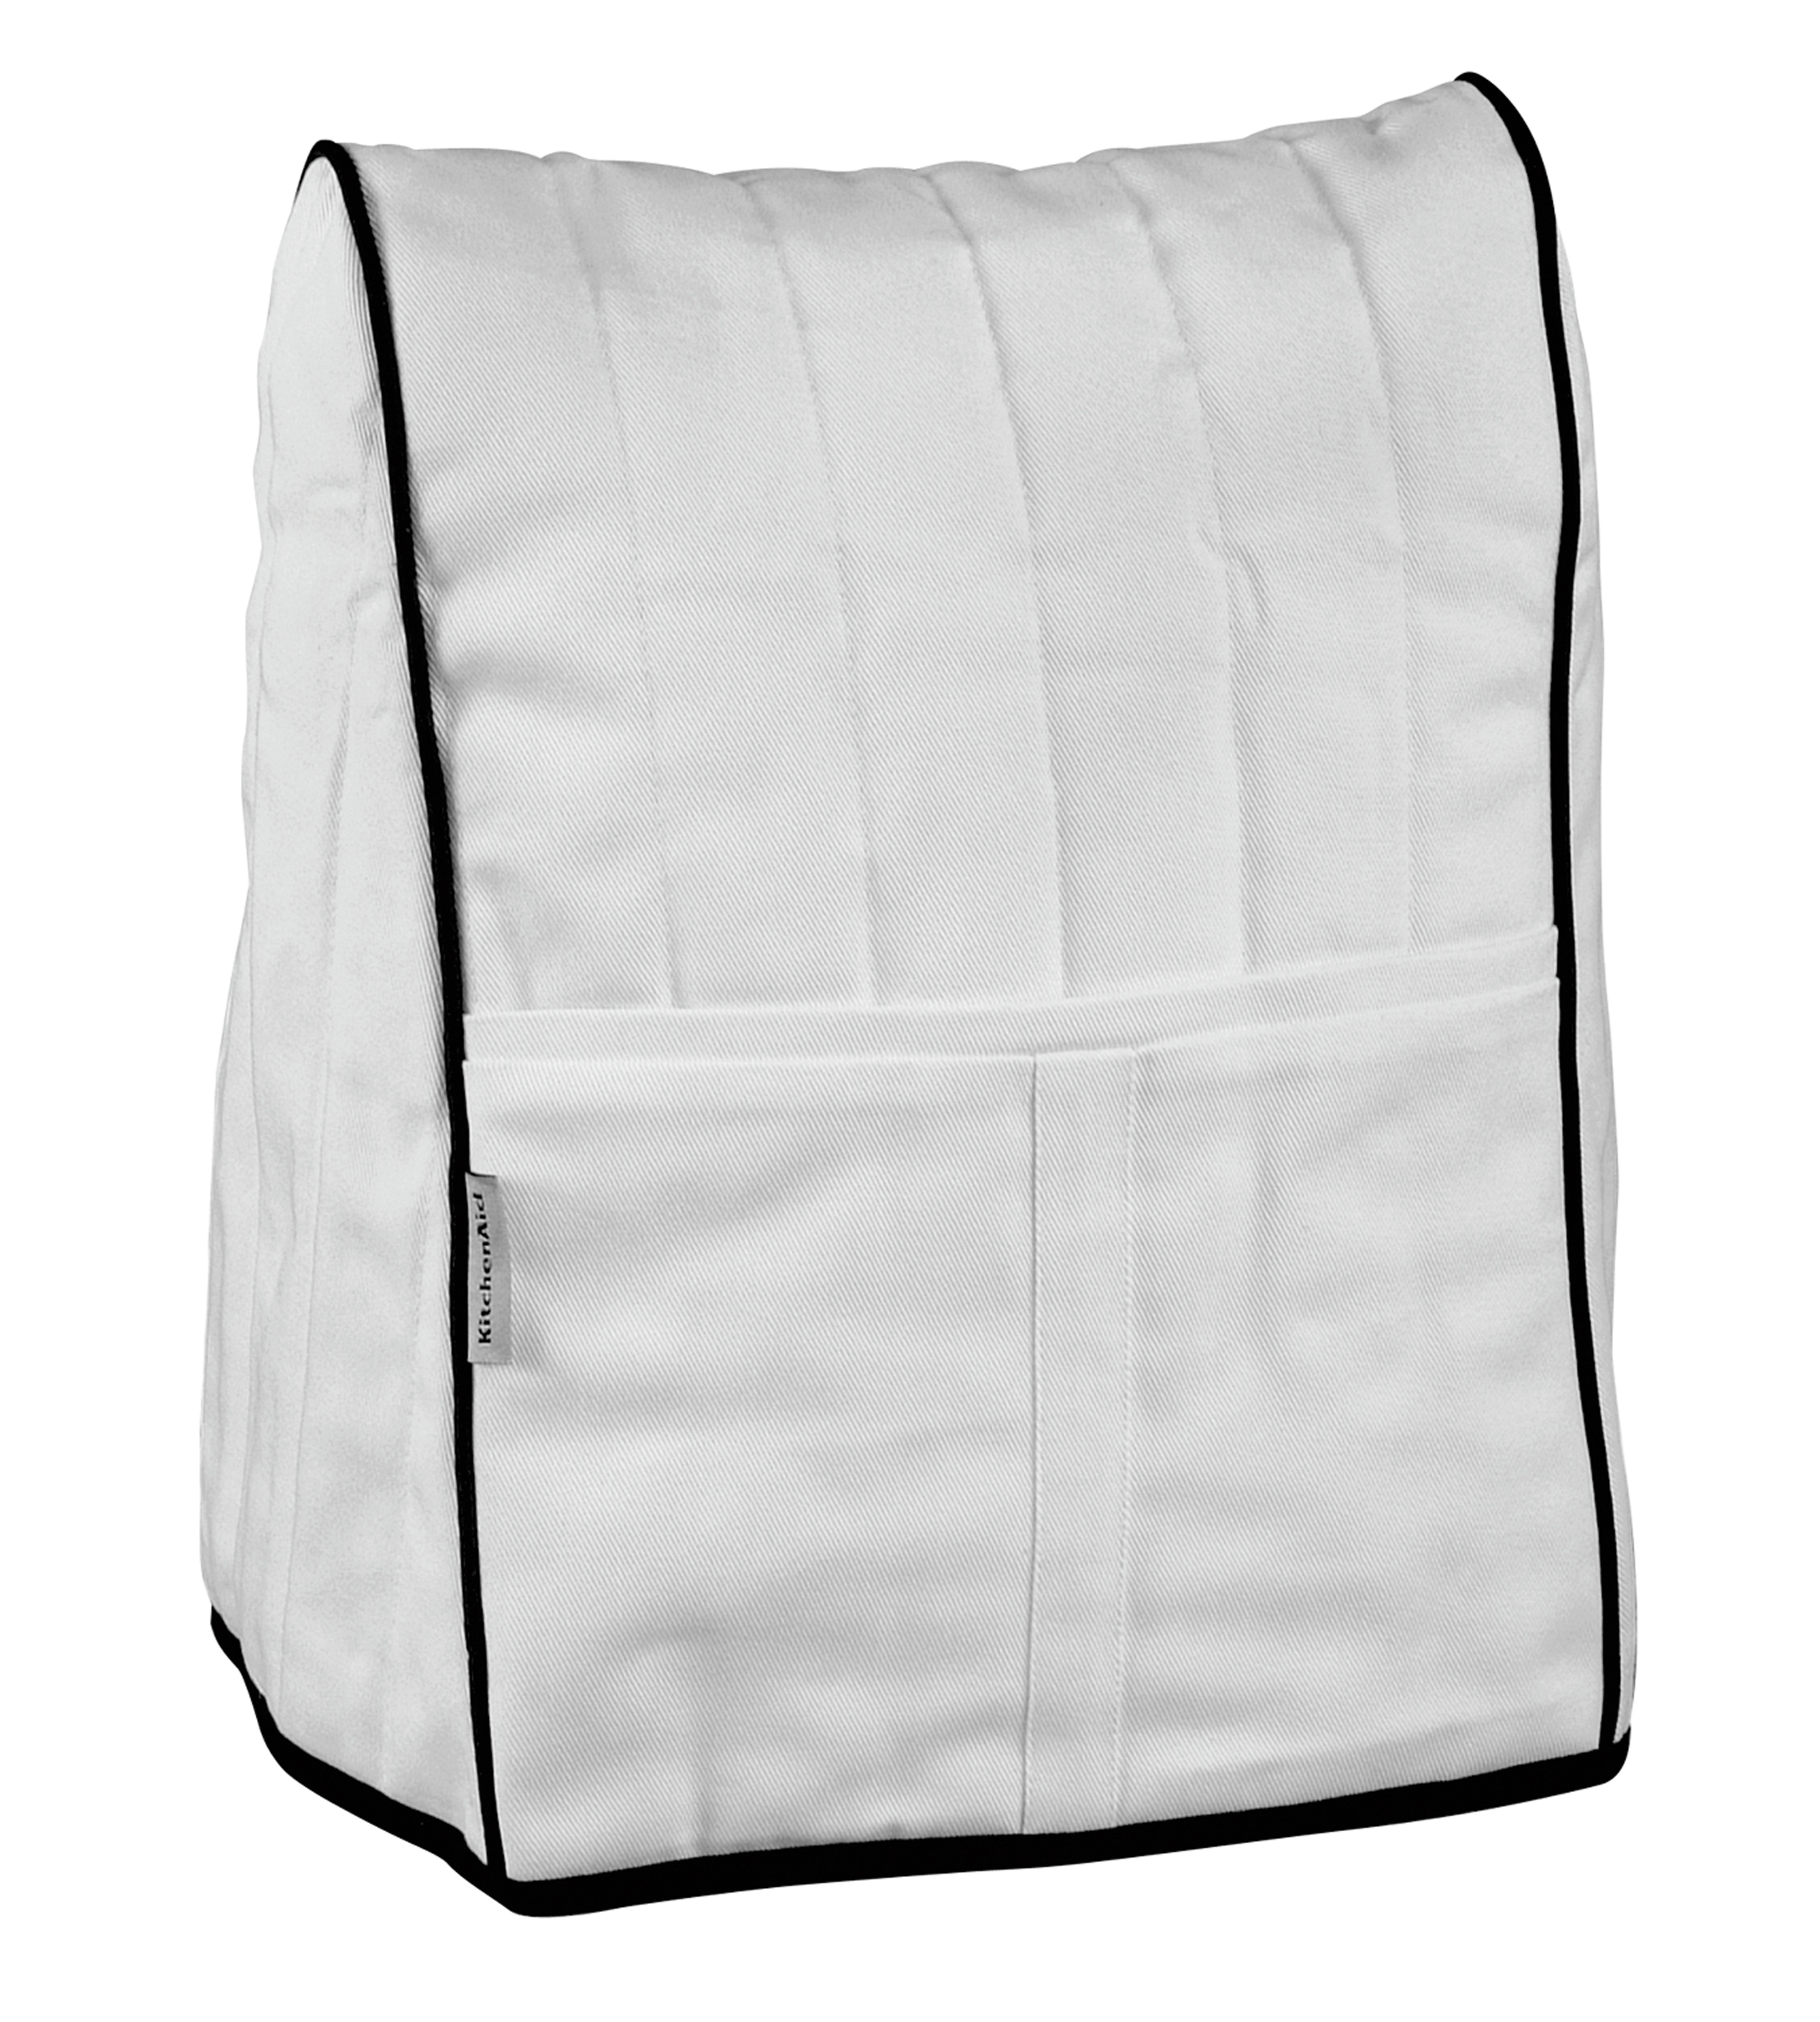 KitchenAid® Cloth Cover, White (KMCC1WH)